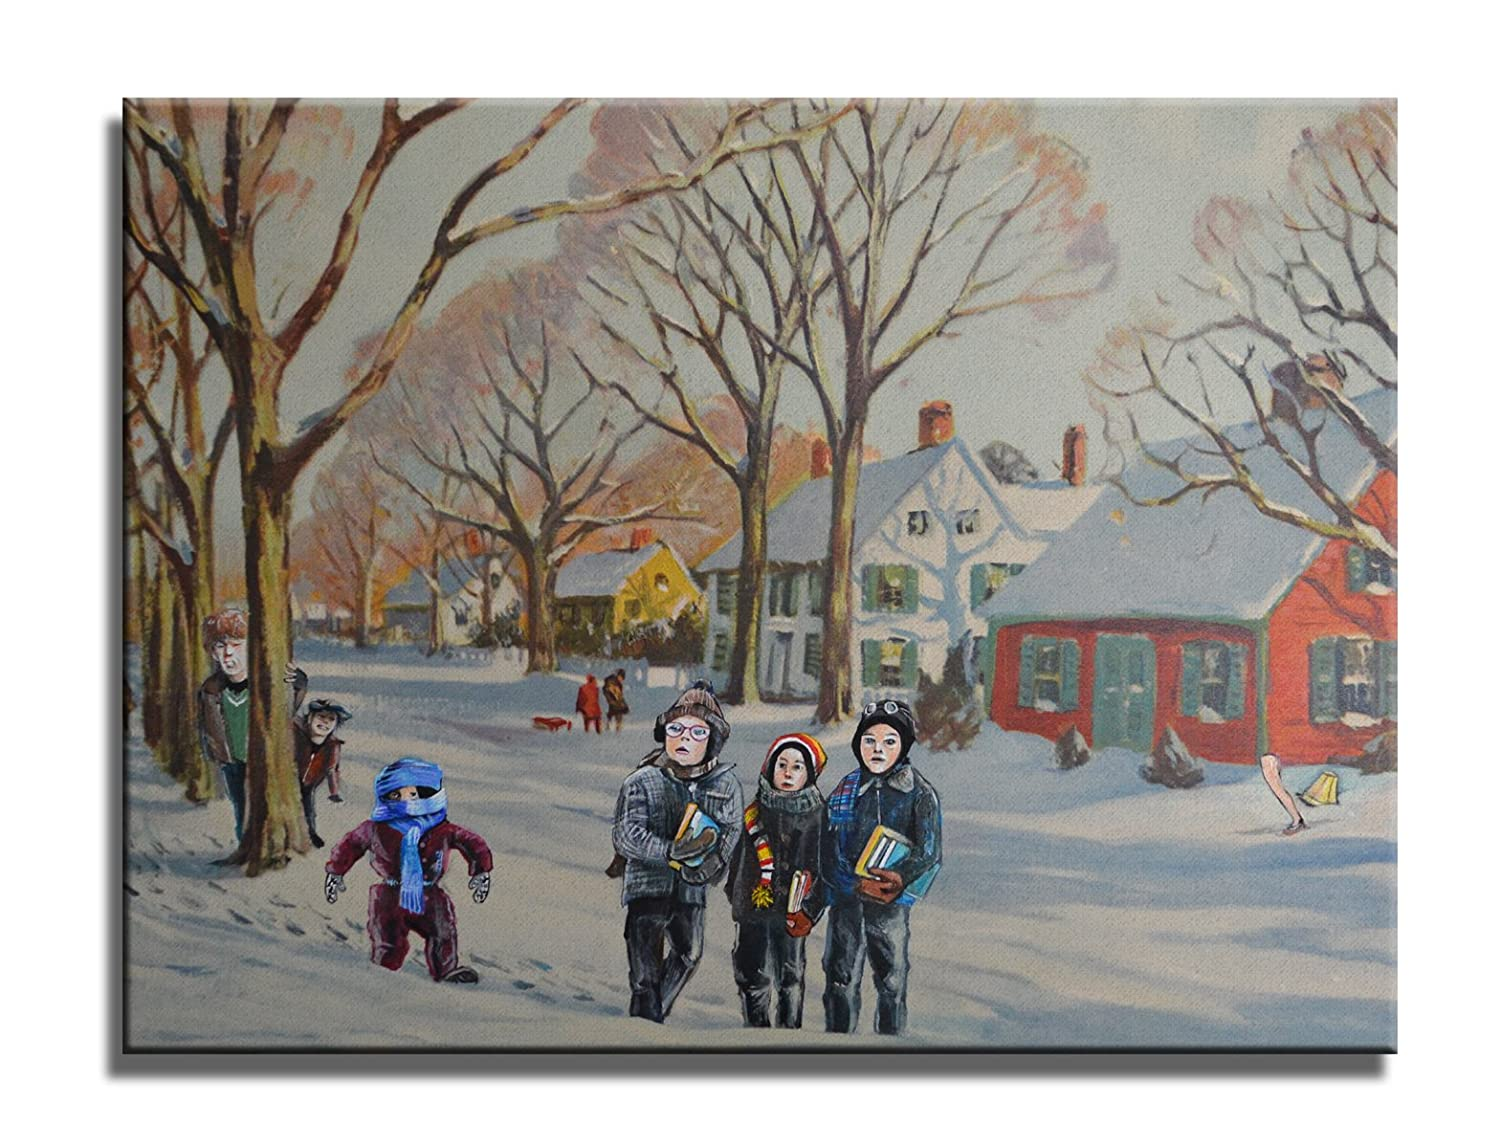 David Irvine Signed Authentic Official Pop The The Bell Rang Ralphie A Christmas Story Wrap Canvas Wall Art D/écor at 24in by 36in MCNVDRV014